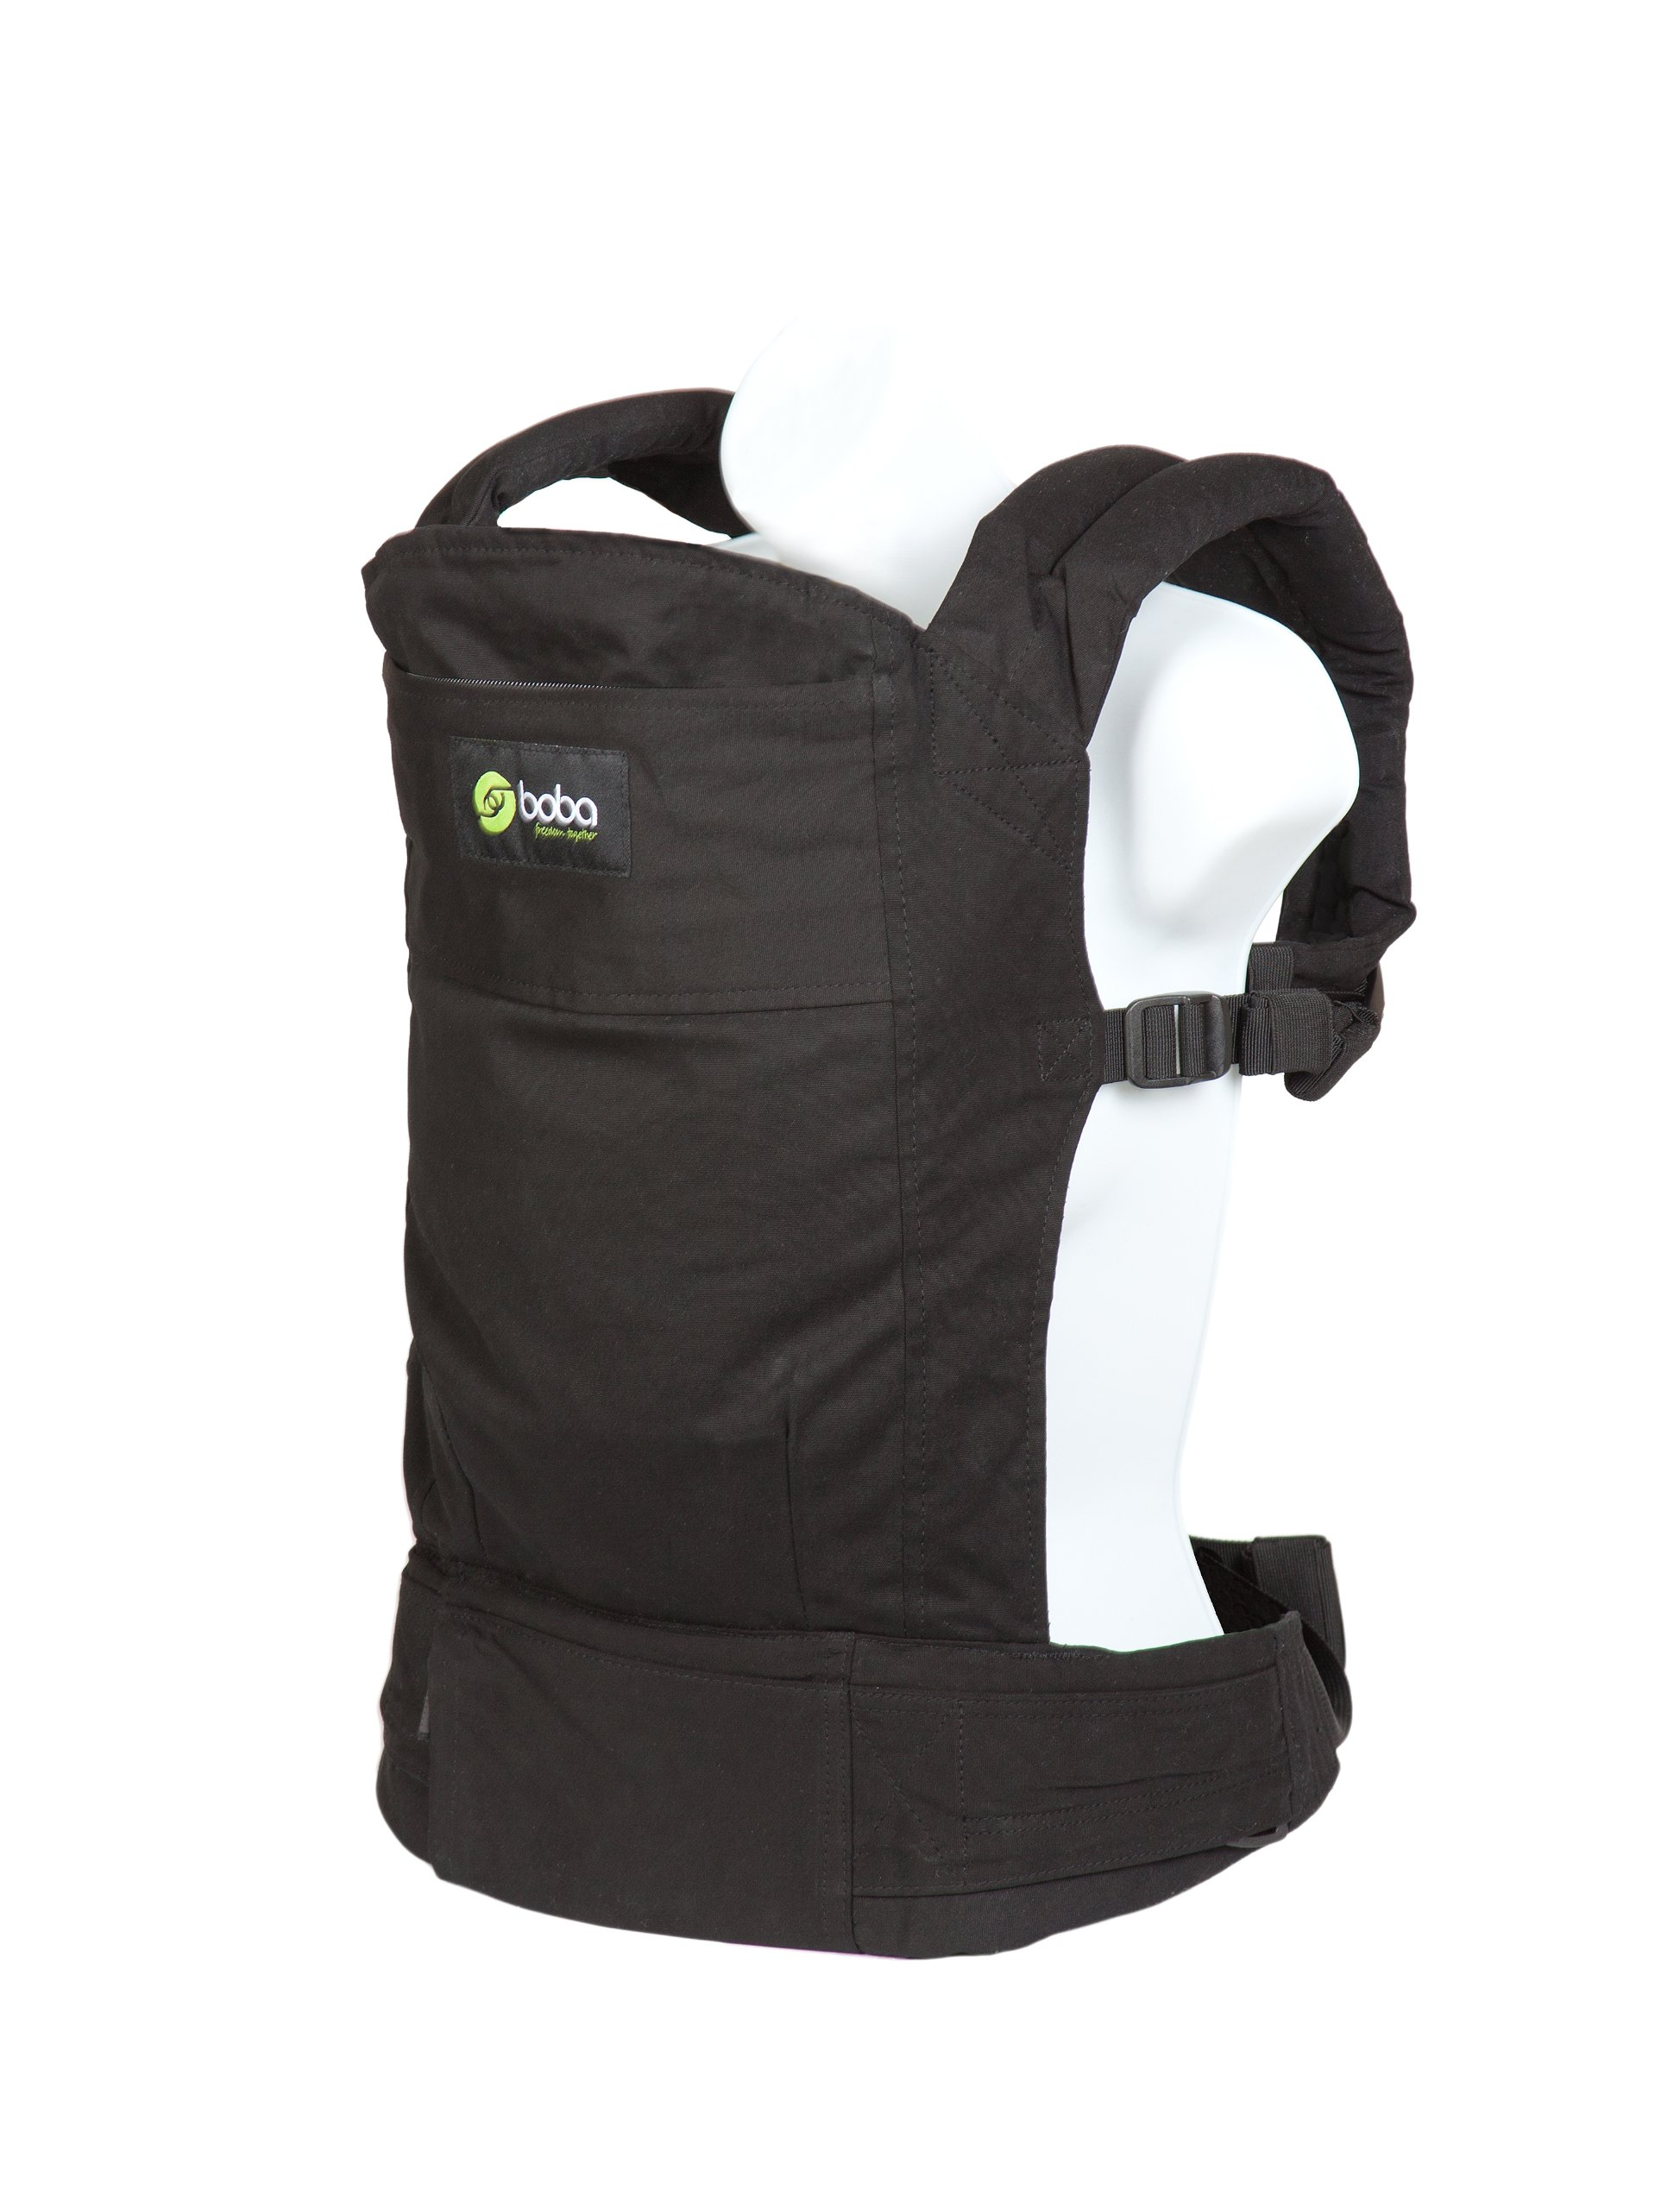 "Boba 3G Baby Carrier, Montenegro Boba Use as a front carrier from 7 - 15lbs and front or back carrier from 15 - 45 lbs Removable sleeping hood: Comfortable fits heights 5'0 - 6'3"" : Waist range from 25"" - 58"" Removable foot straps: Shoulder strap to keep purse in place: Adjustable chest strap 1"